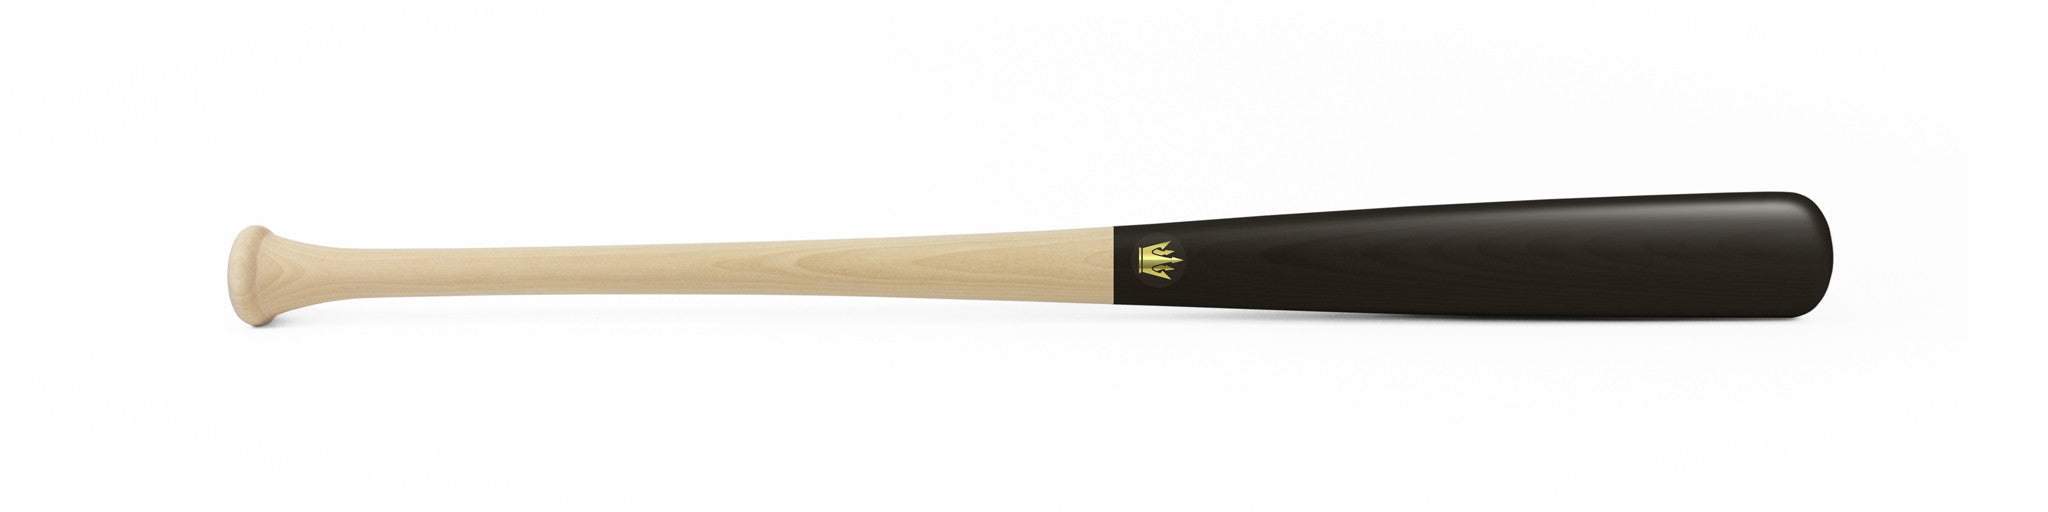 Wood bat - Maple model Y271 Black Standard - 11